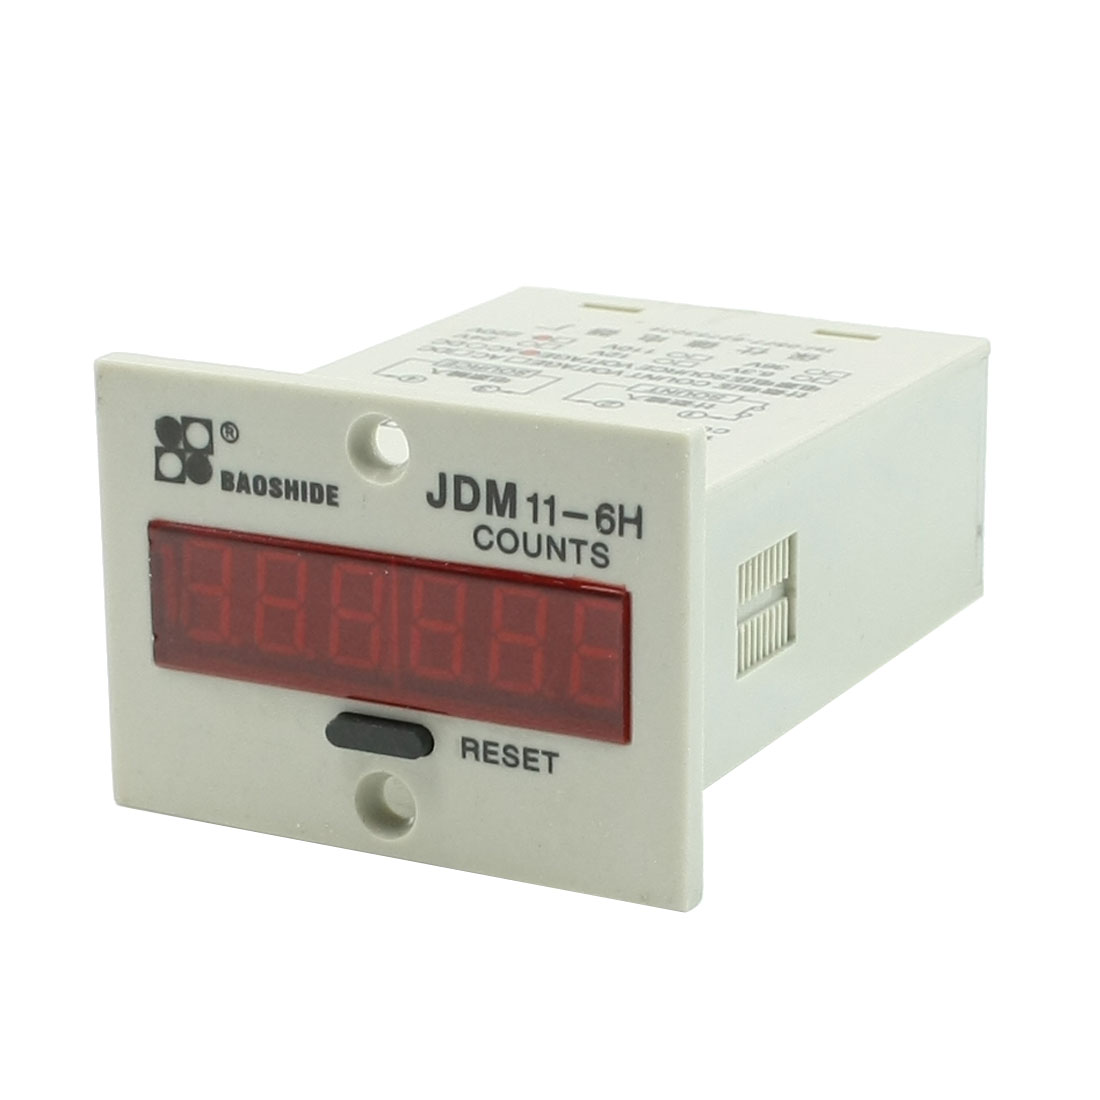 JDM11-6H AC 220V Resettable 6 Digits LED Display Electric Digital Counter